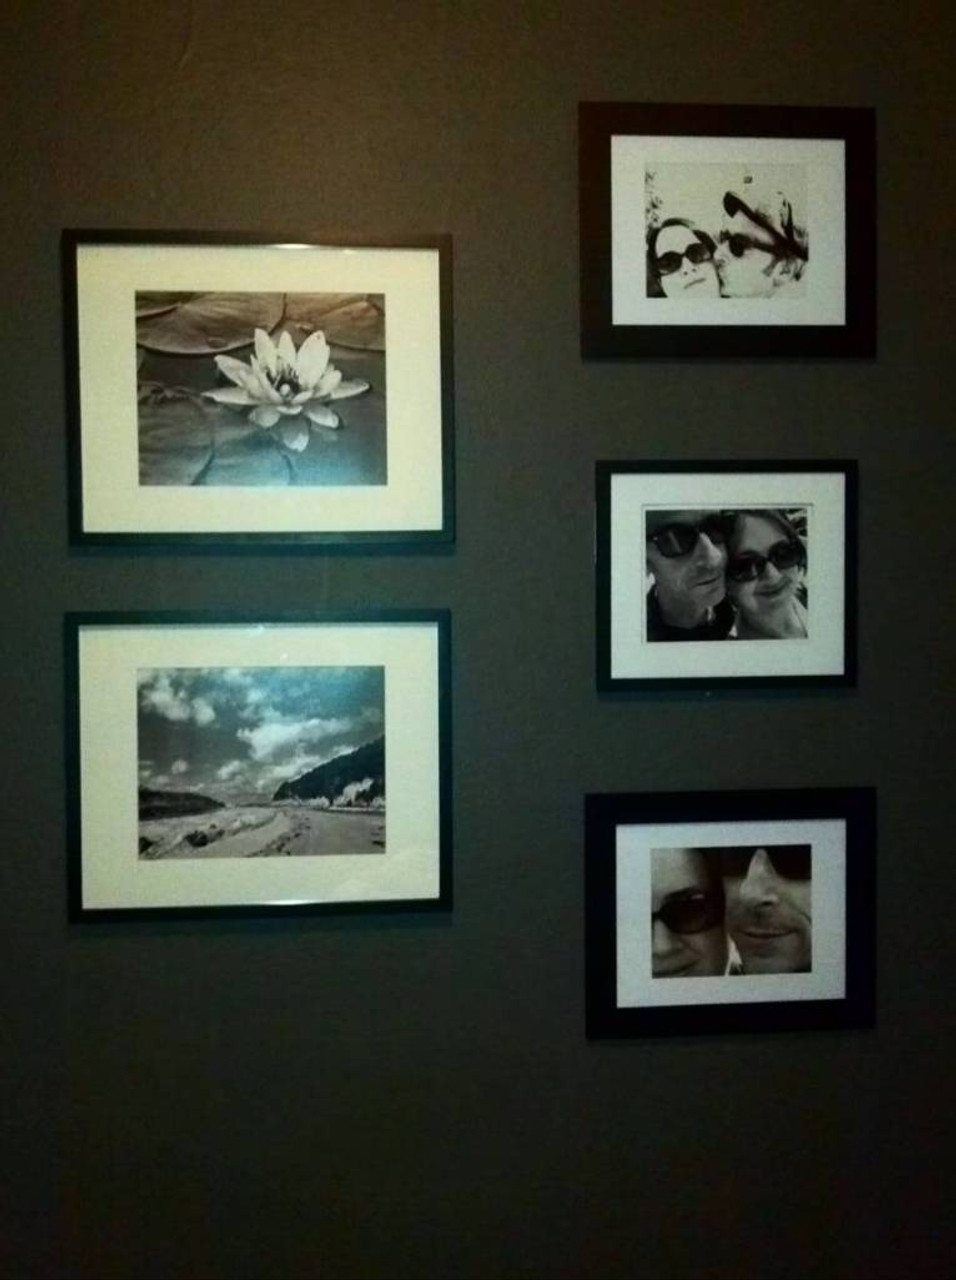 And finally, inspired by another friend's gallery wall she posted on the social media, I finally got off my arse and finished framing and hanging our photos - and thanks to Dan's suggestion of those cool velcro sticker hangin